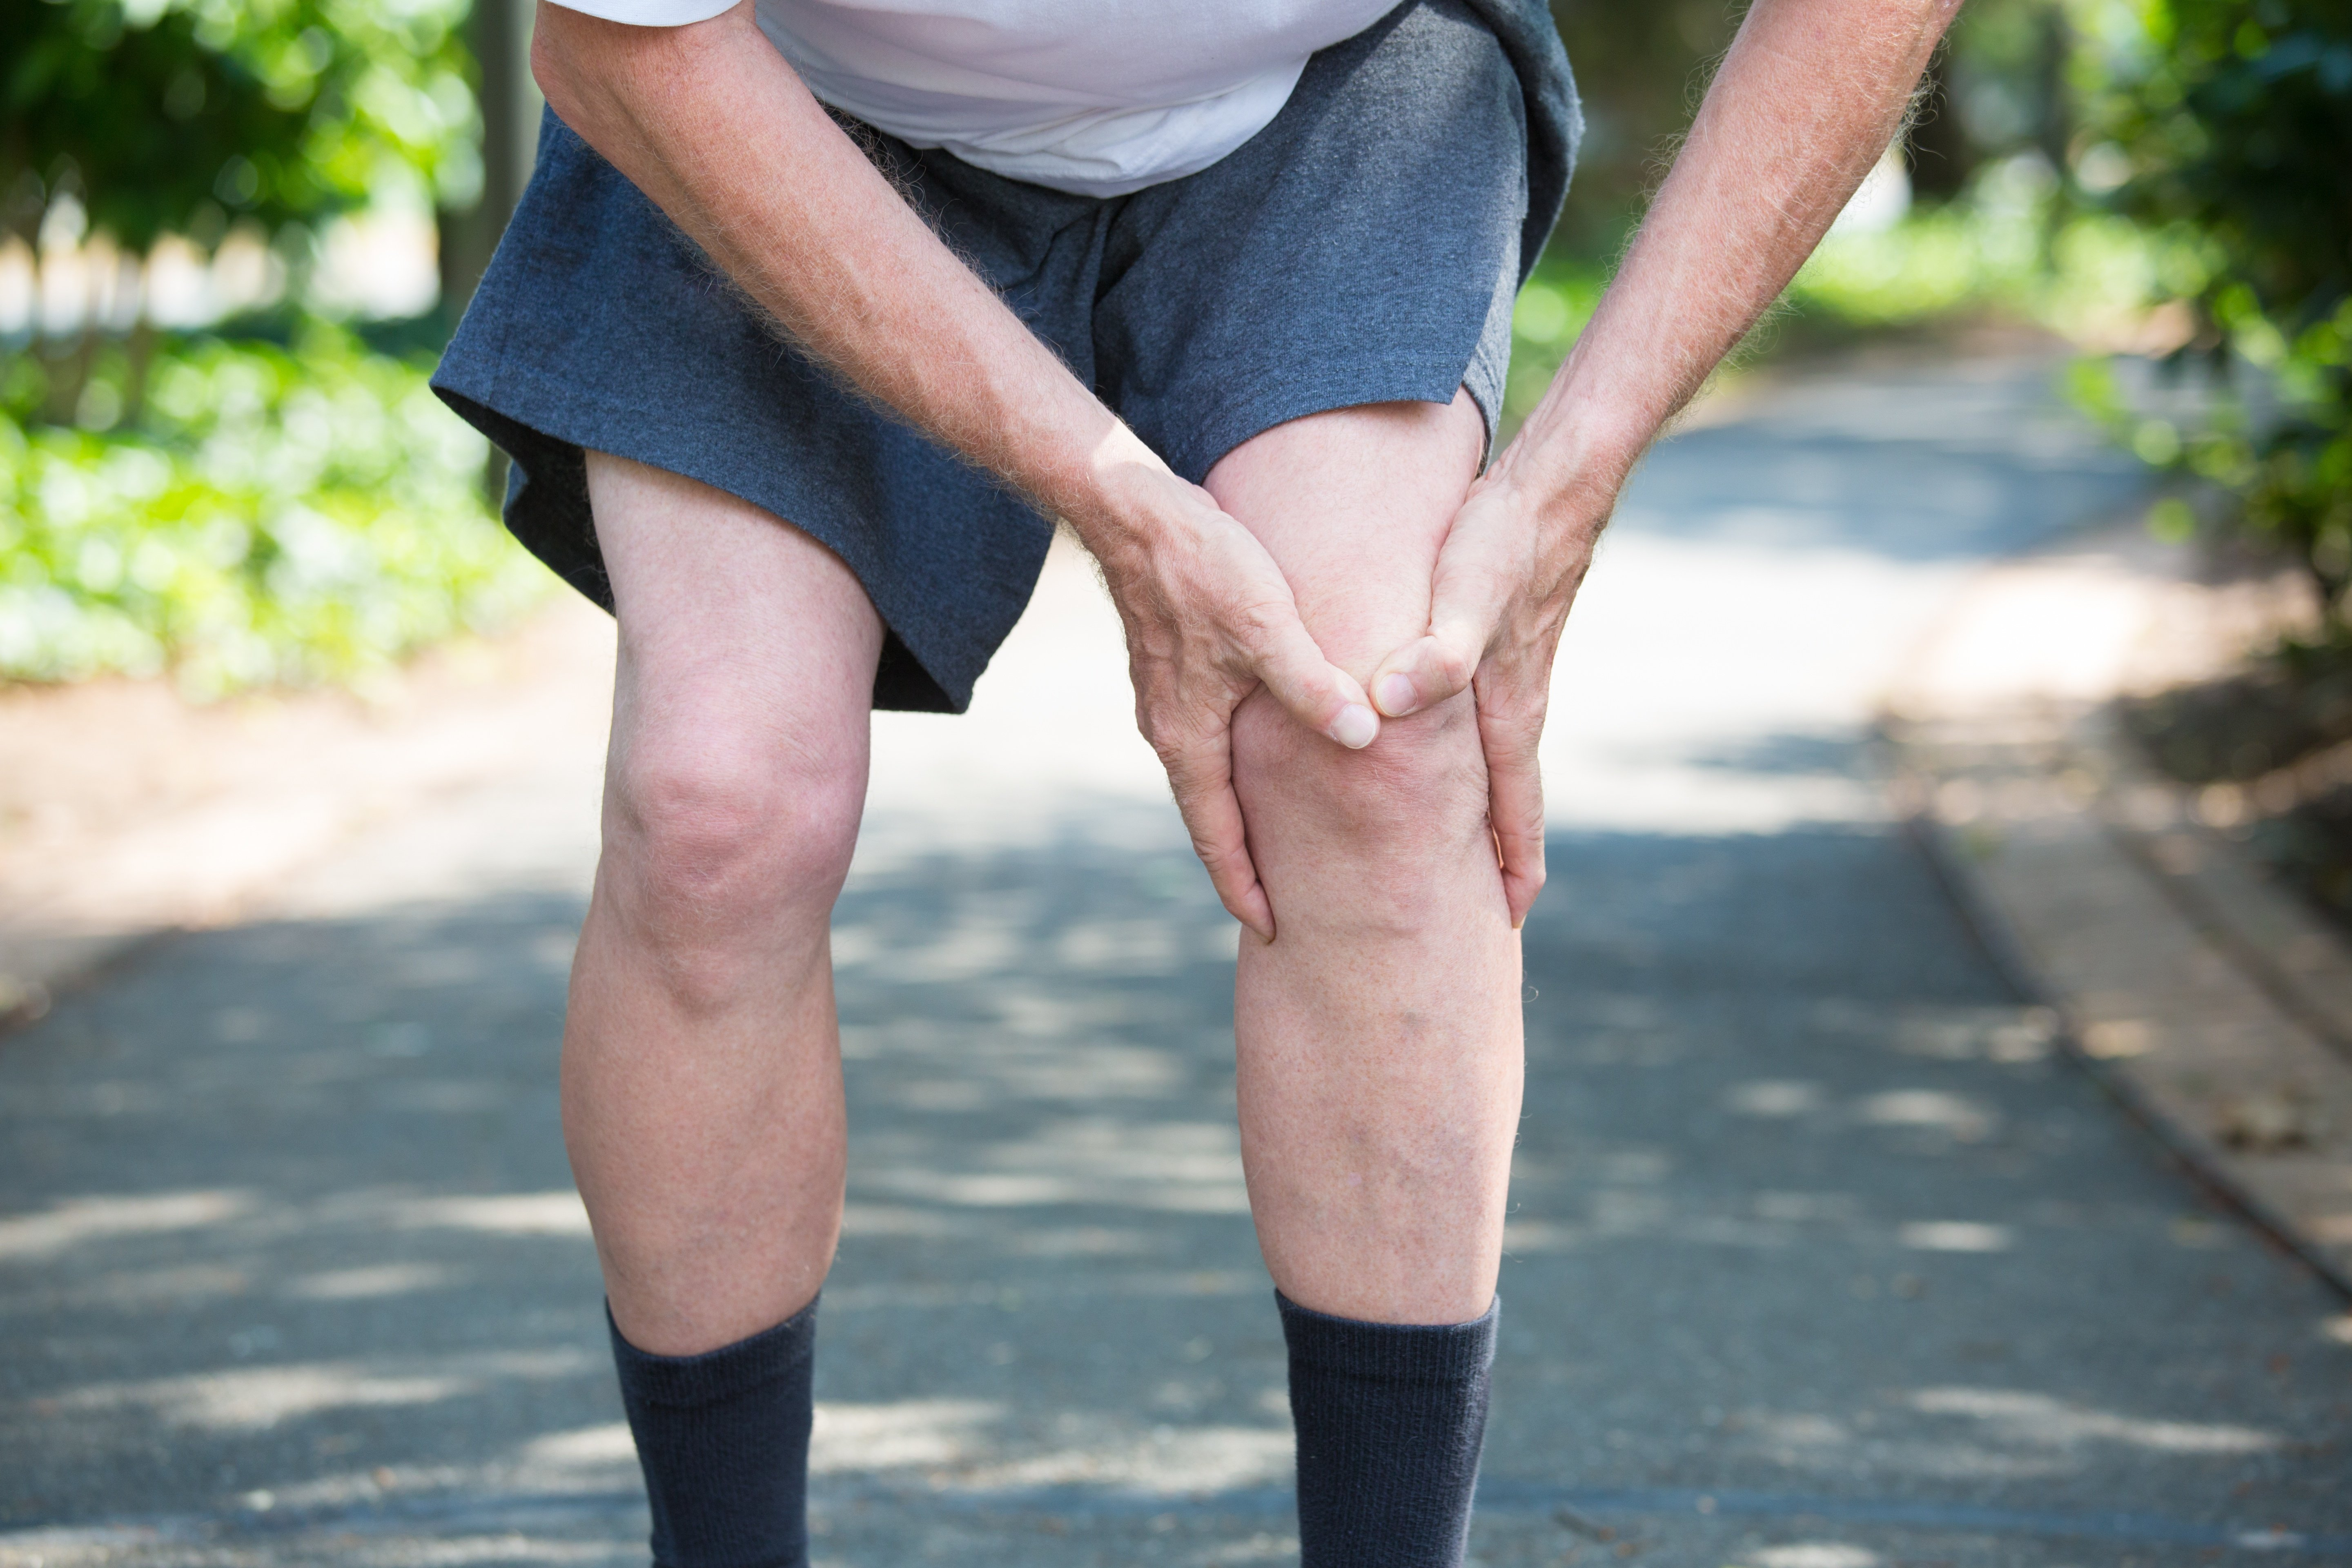 Osteoarthritis Facts: The Most Common Form of Arthritis